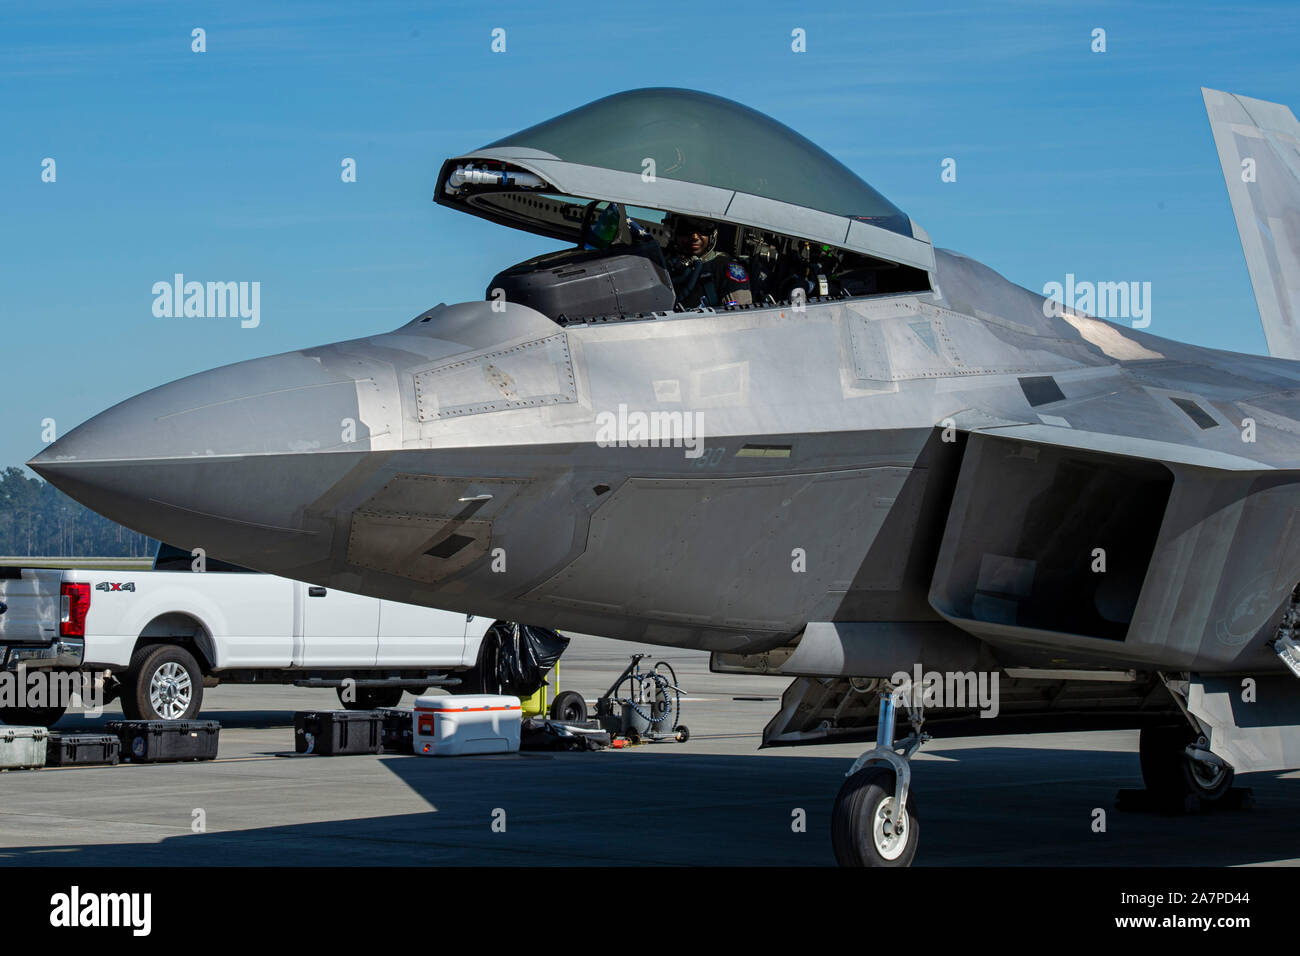 "Lt. Col. Paul ""Loco"" Lopez, F-22 Raptor Demonstration Team commander and pilot, sits in the cockpit of an F-22 during the 2019 Thunder Over South Georgia (TOSGA) Open House Nov. 3, 2019, at Moody Air Force Base, Ga. The F-22 Demonstration Team performs precision aerial maneuvers to demonstrate the unique capabilities of the fifth-generation fighter aircraft. The 2019 TOSGA Open House was headlined by the world-famous U.S. Navy Blue Angels and featured multiple demonstrations including the Smoke N Thunder jet truck and Wings of Blue Parachute Team. (U.S. Air Force photo by Airman Azaria E. Fost Stock Photo"